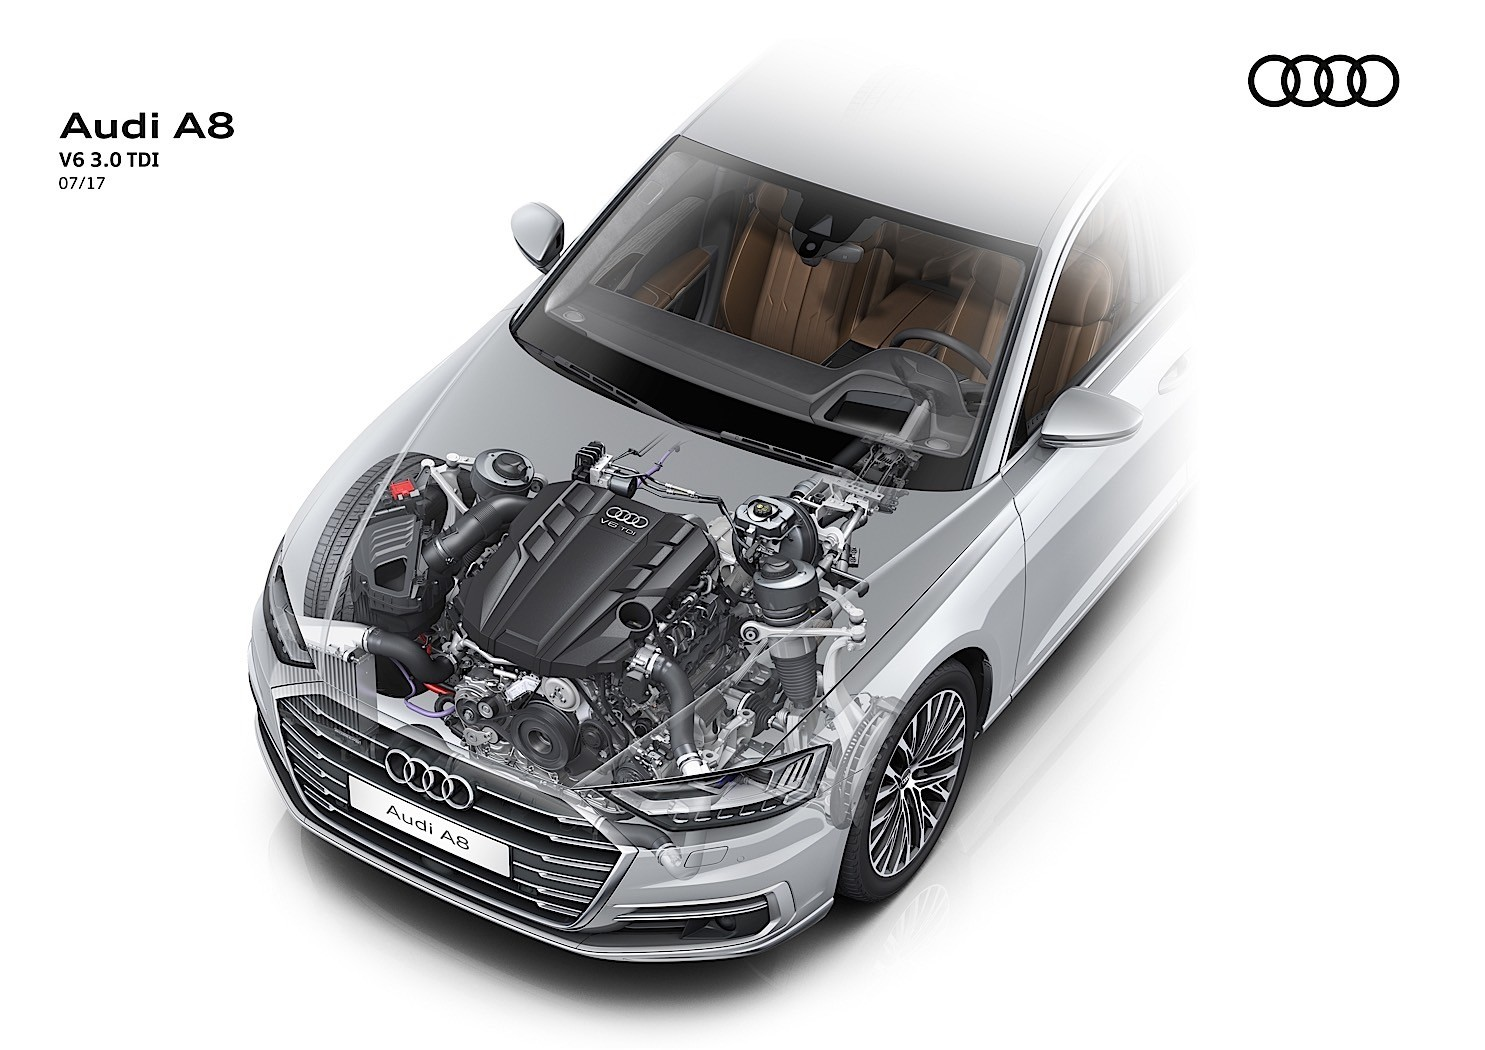 Audi W12 Engine Diagram Wiring Library A8 2018 D5